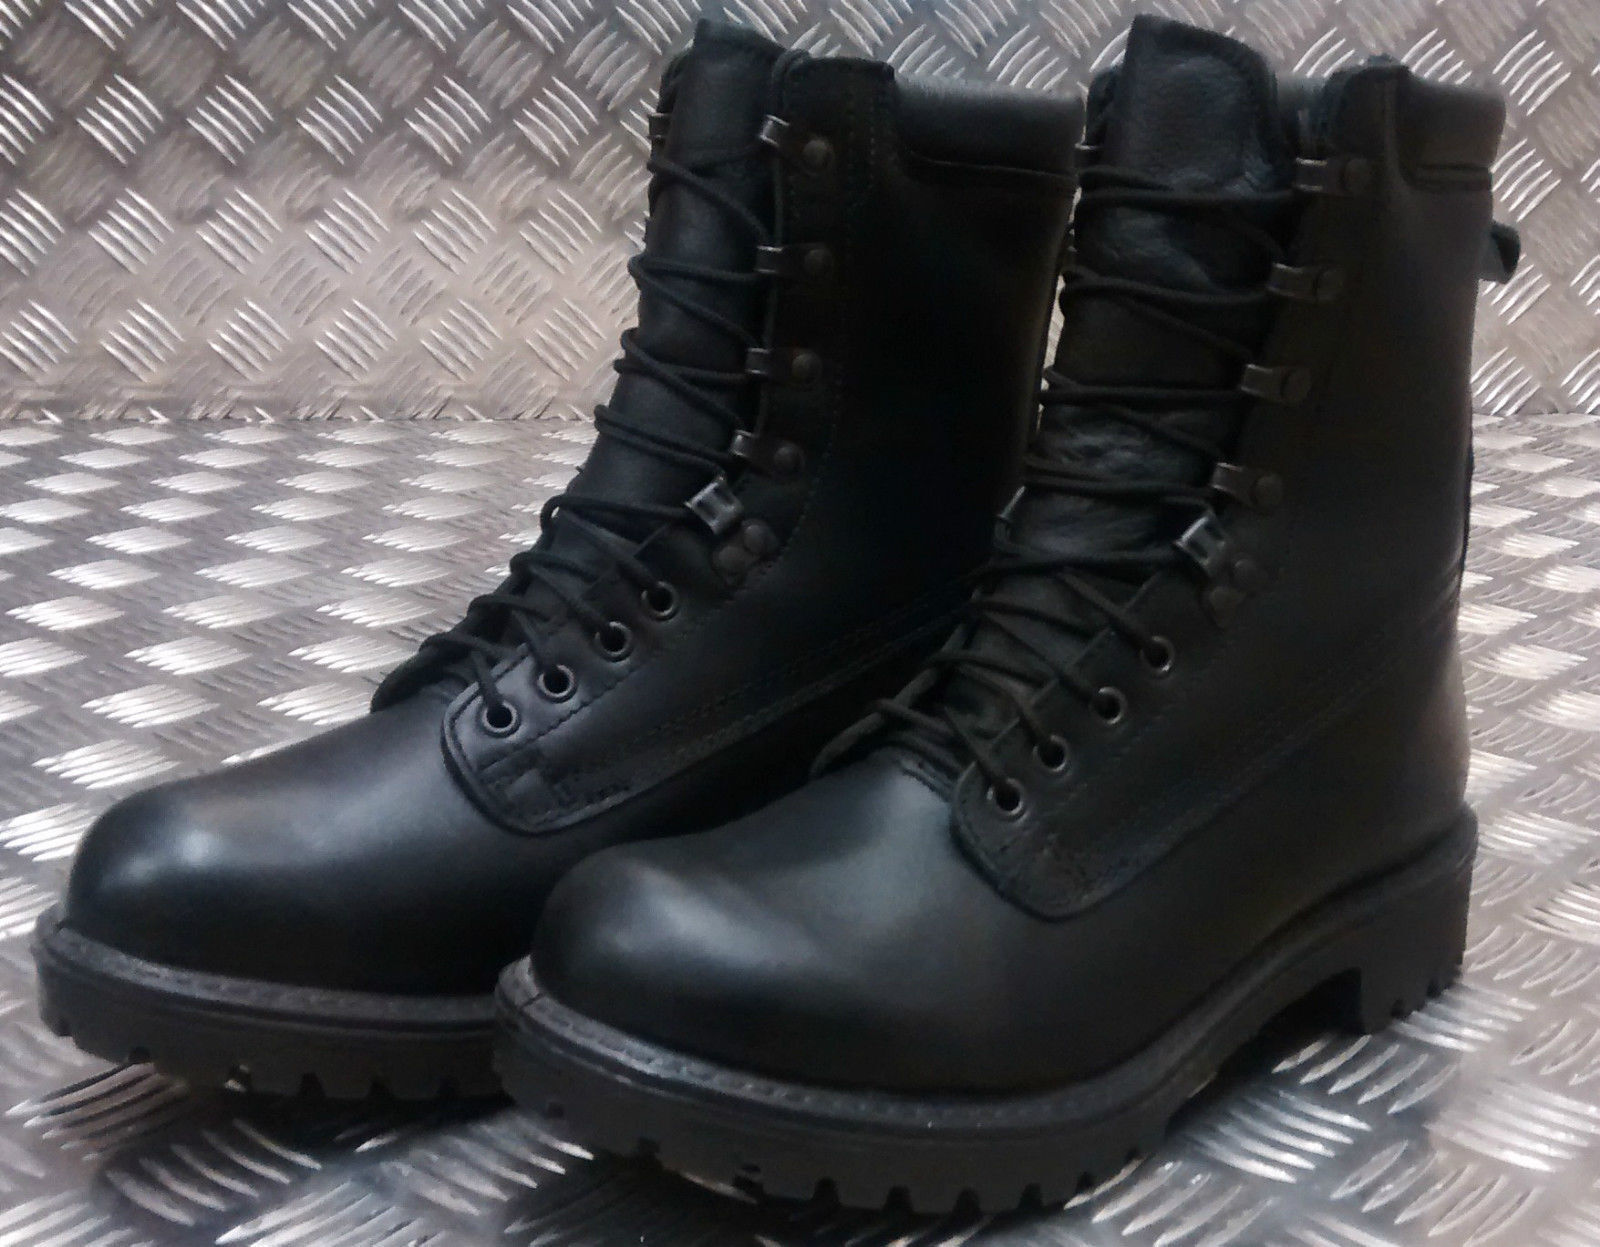 Genuine British Army S10 Goretex Assault Black Leather Combat / Boots - Used